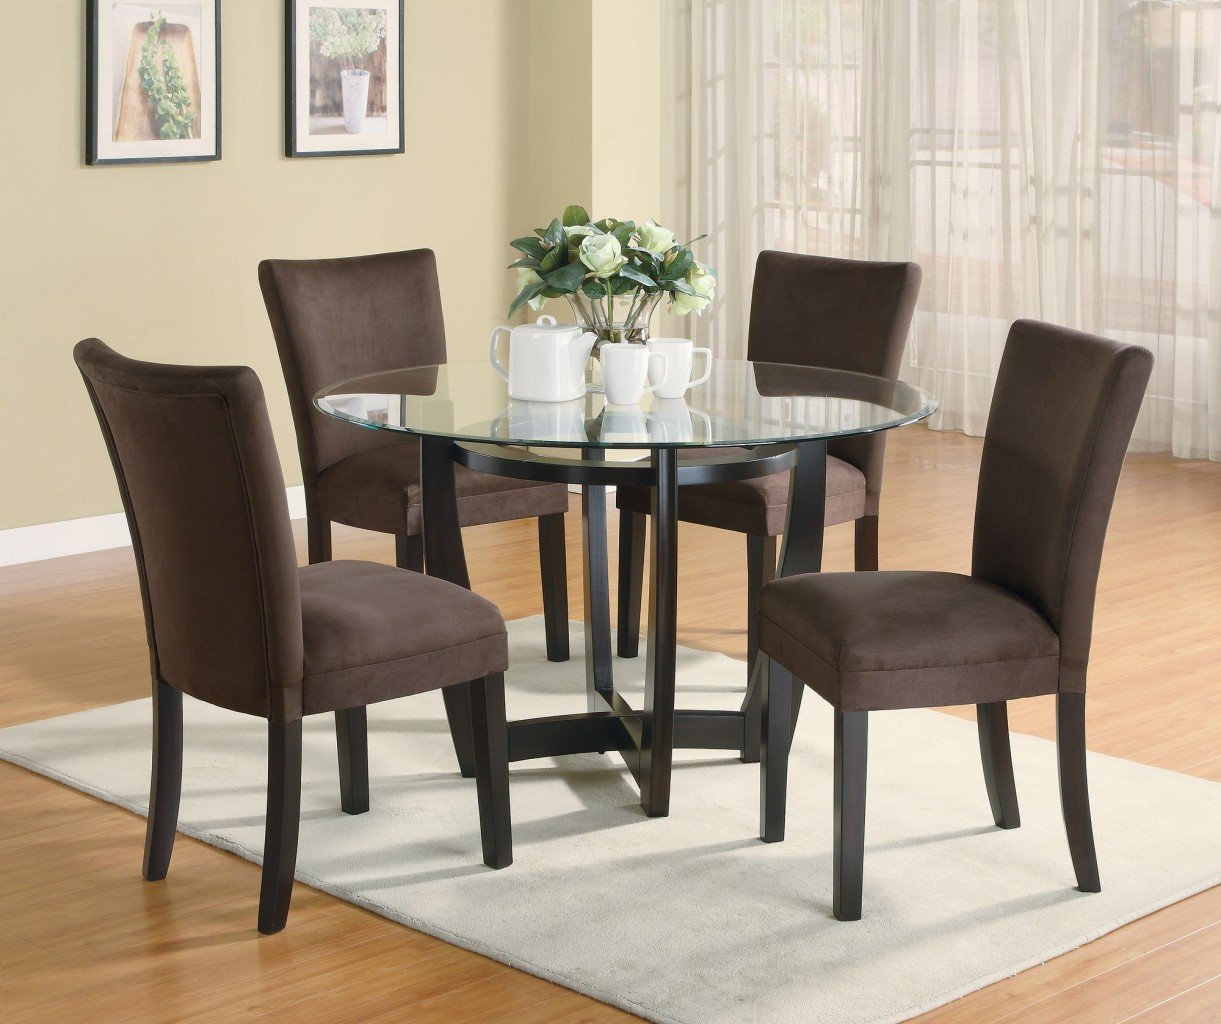 cheap used dining room sets | Cheap Dining Room Table Sets - Home Furniture Design